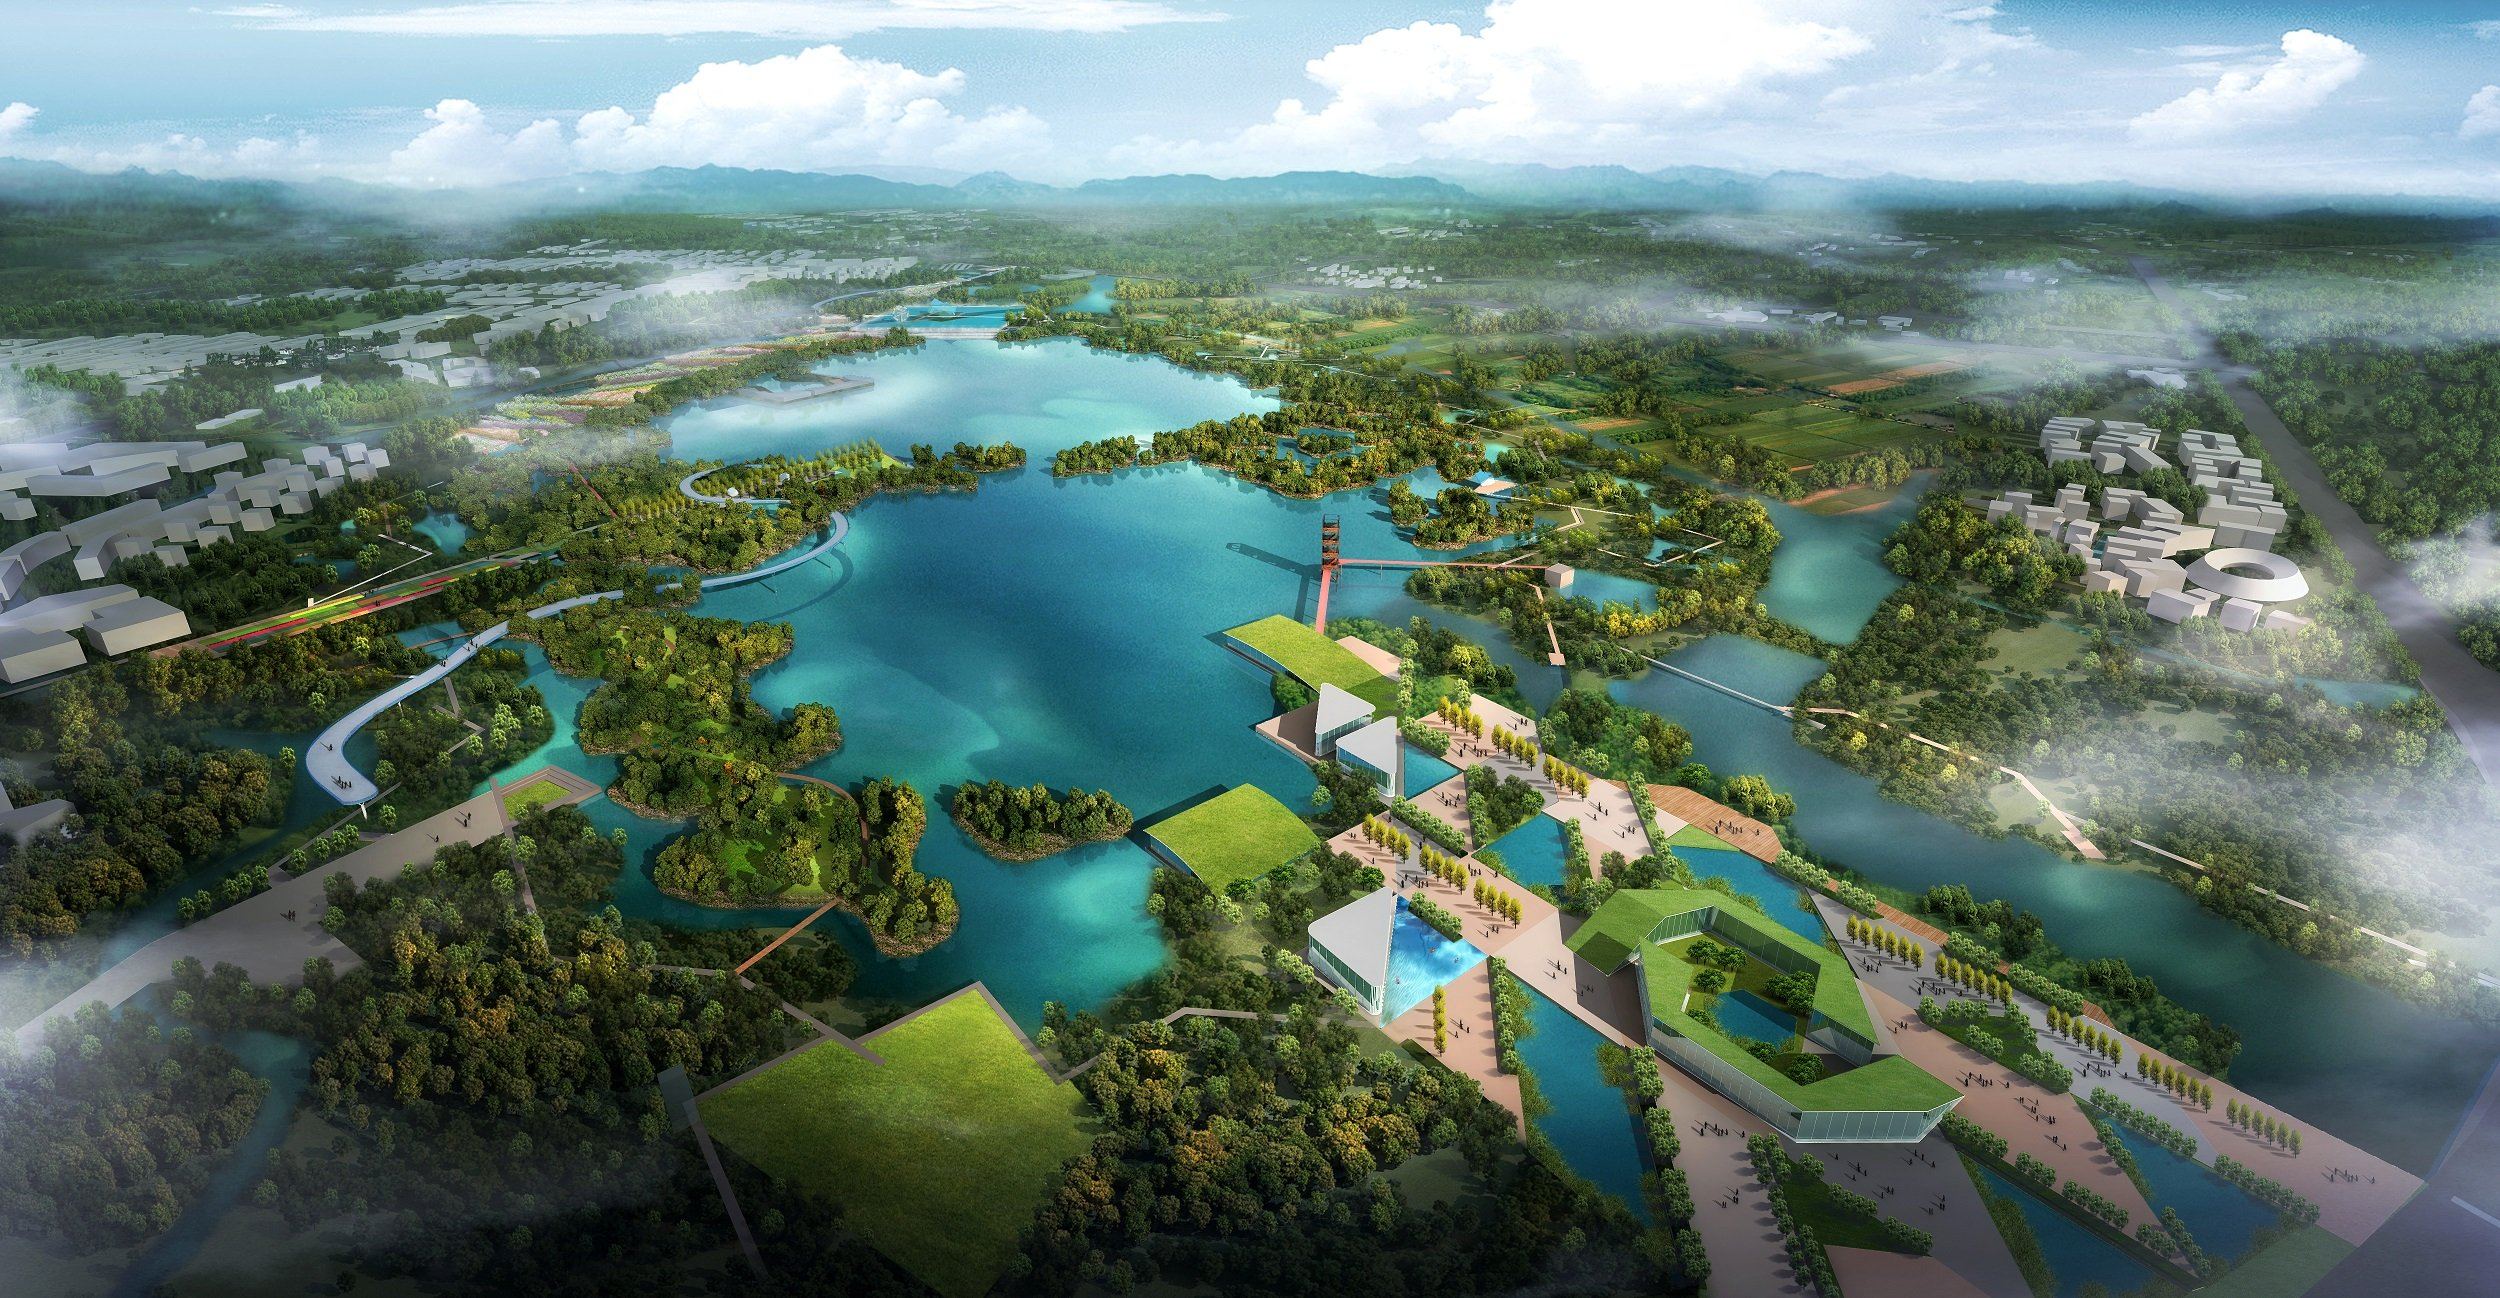 Integrated Landscape Design, Ecological Water Management, Yixing